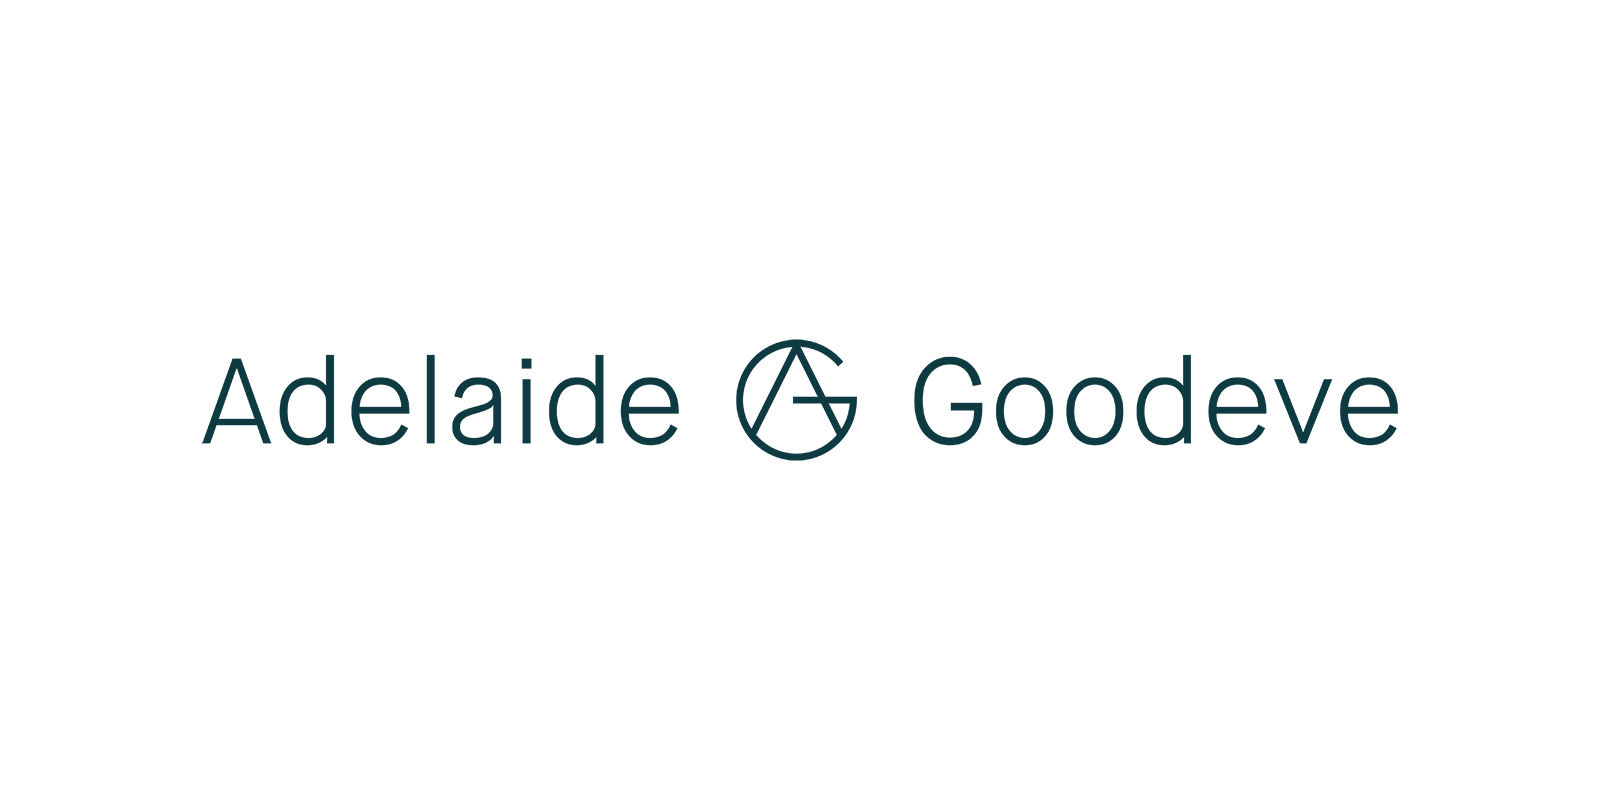 adelaide-goodeve-personal-brand-02.png